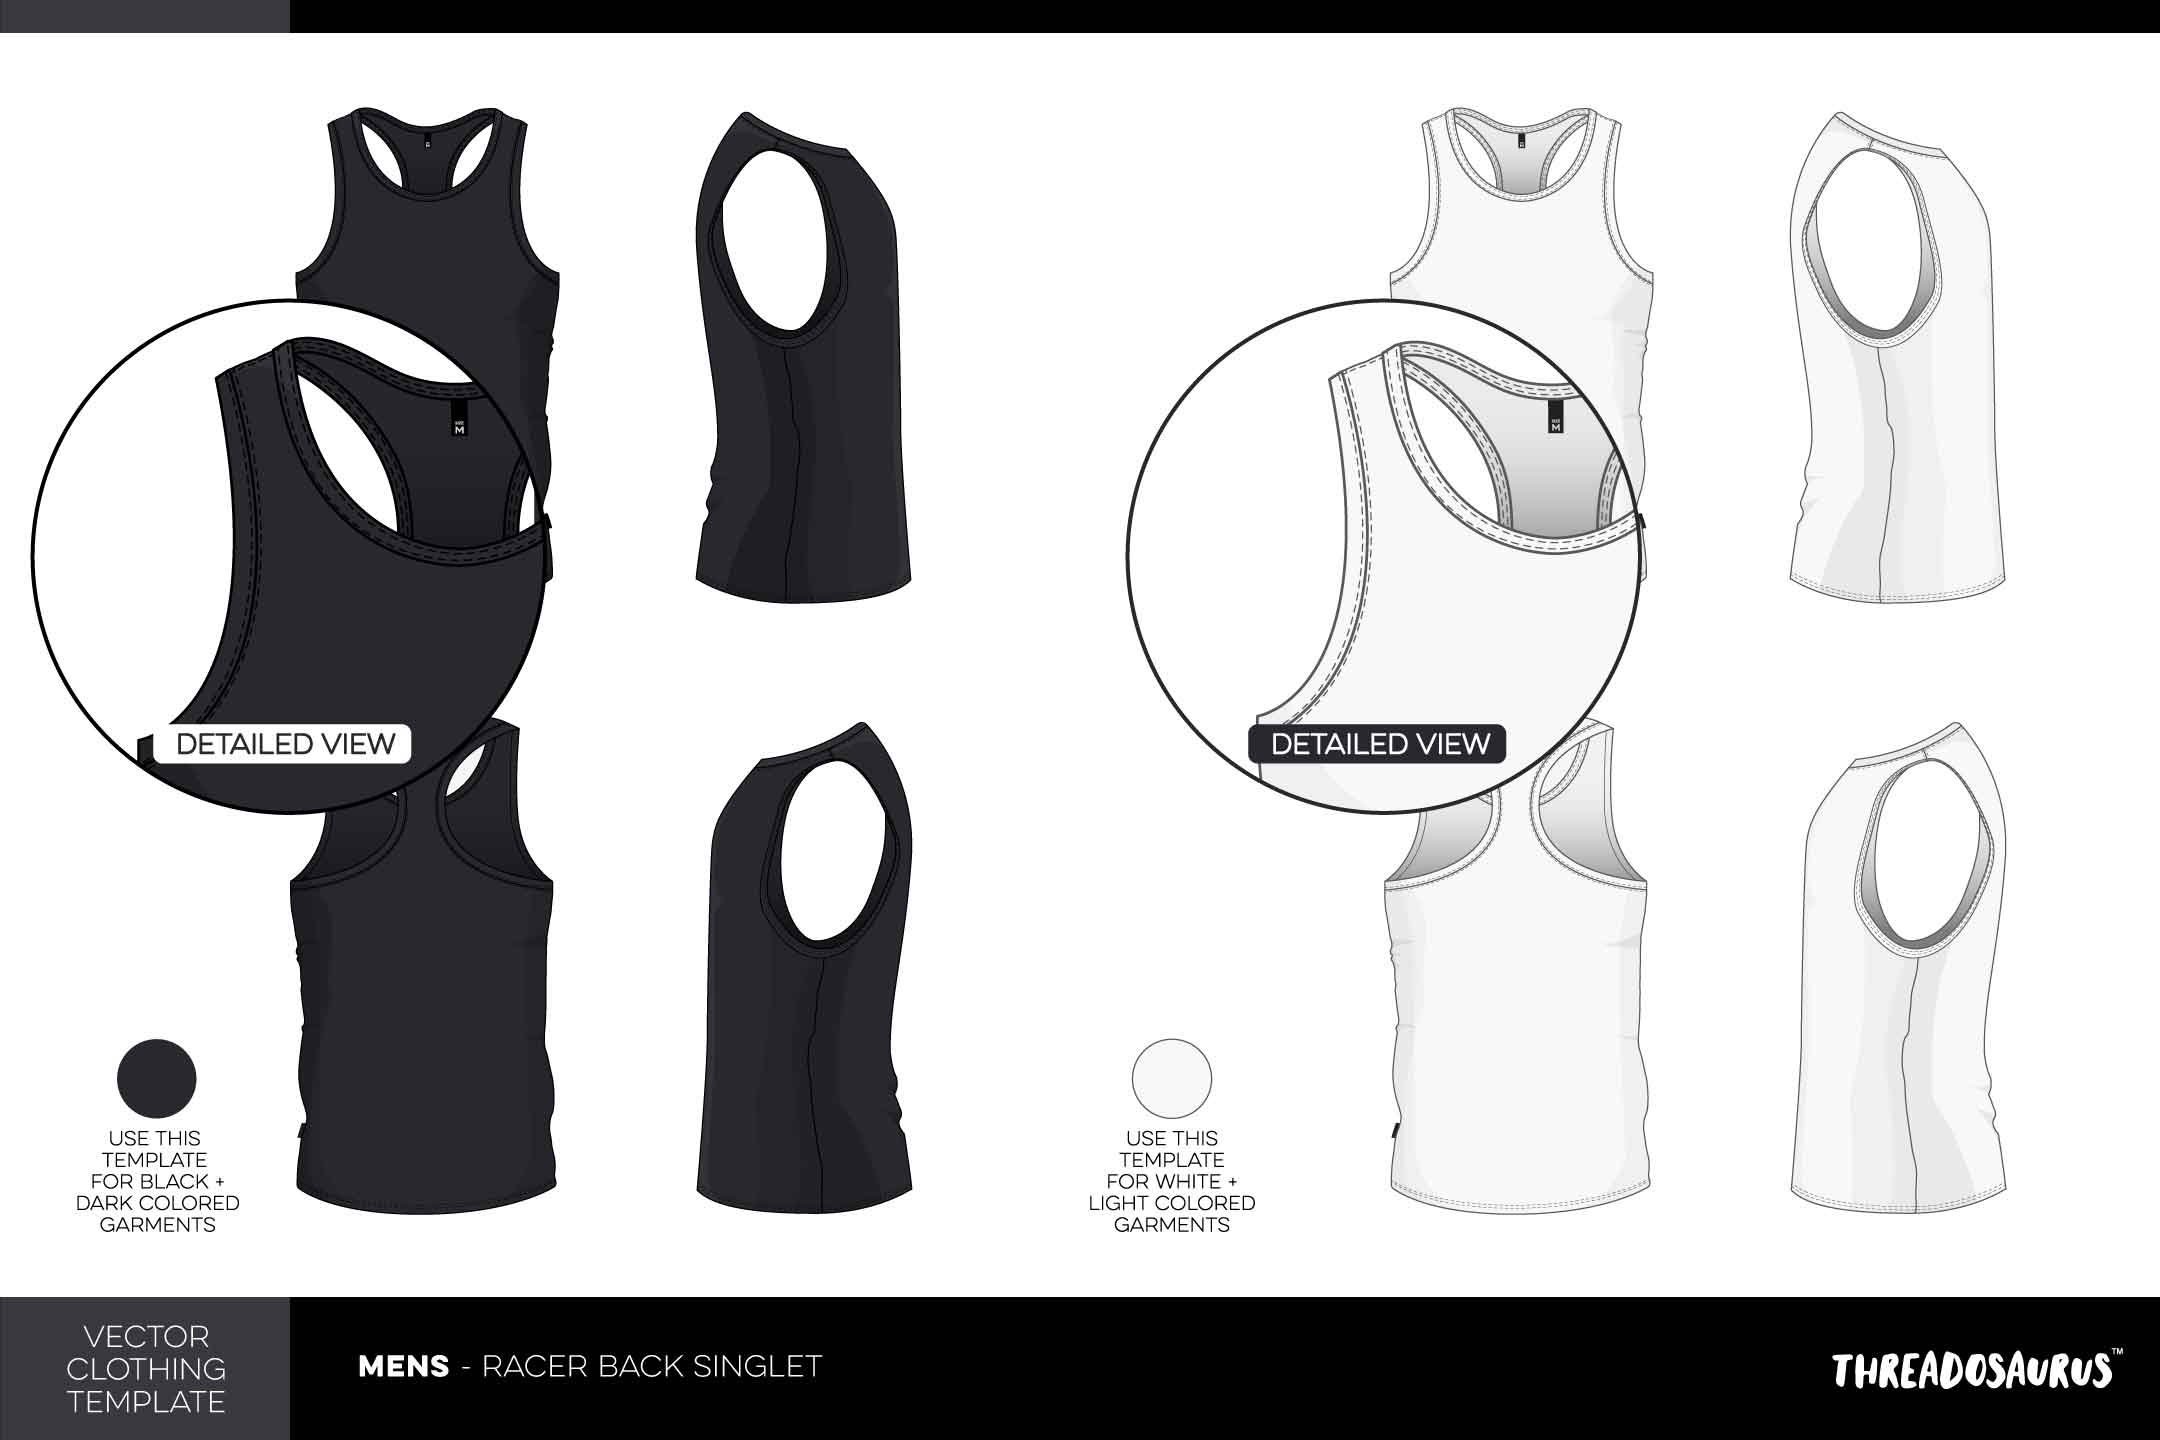 Mens racerback singlet template - vector pack